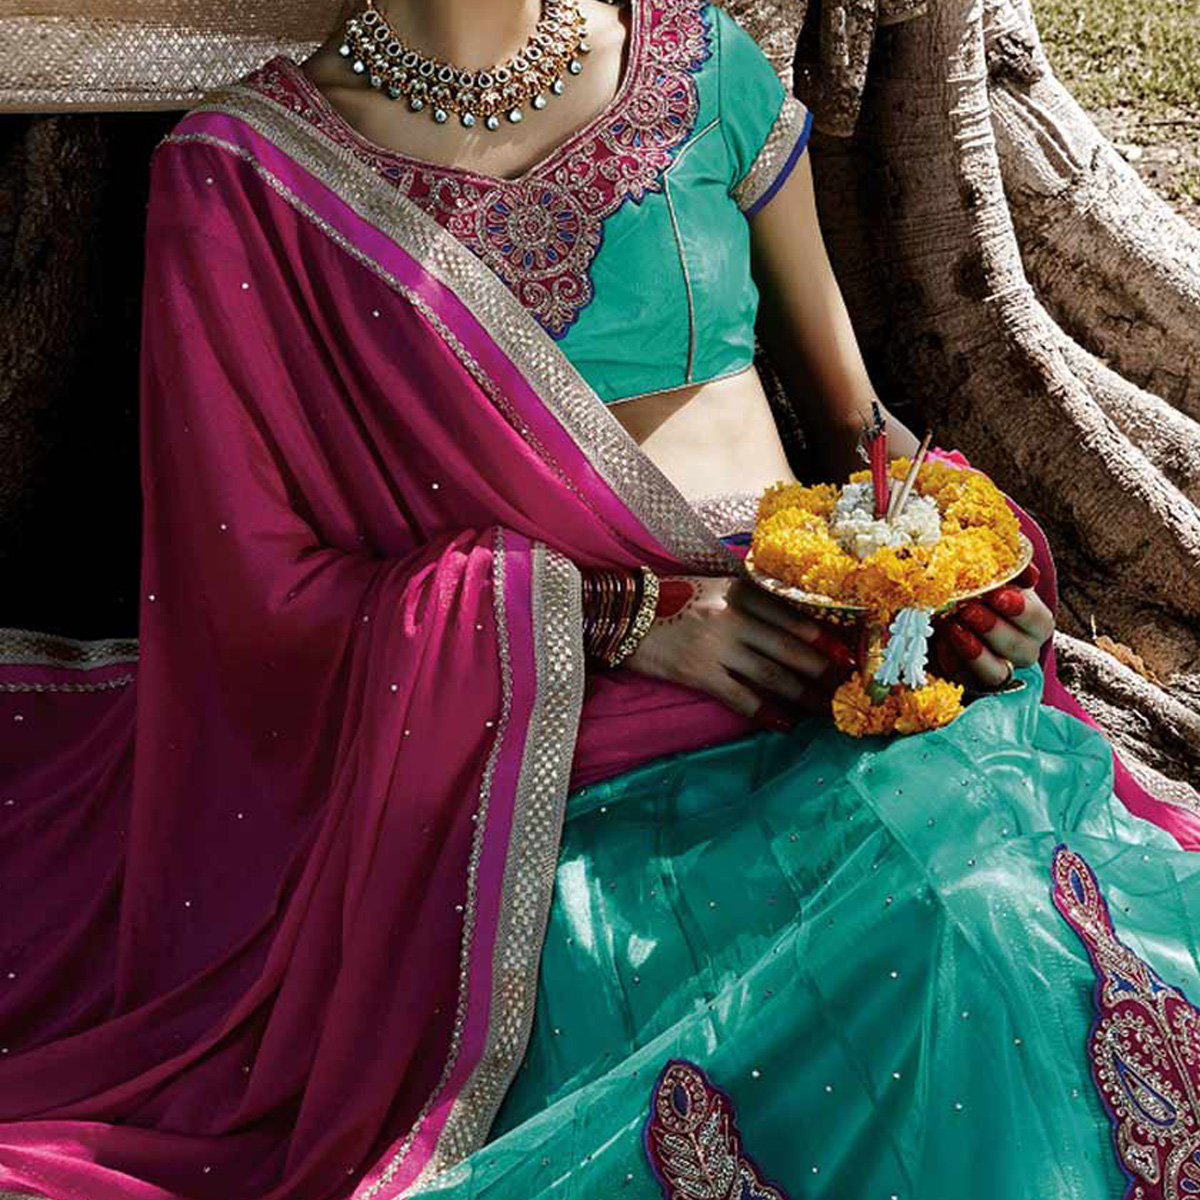 Aqua Blue - Rani Pink Embroidered Lehenga saree